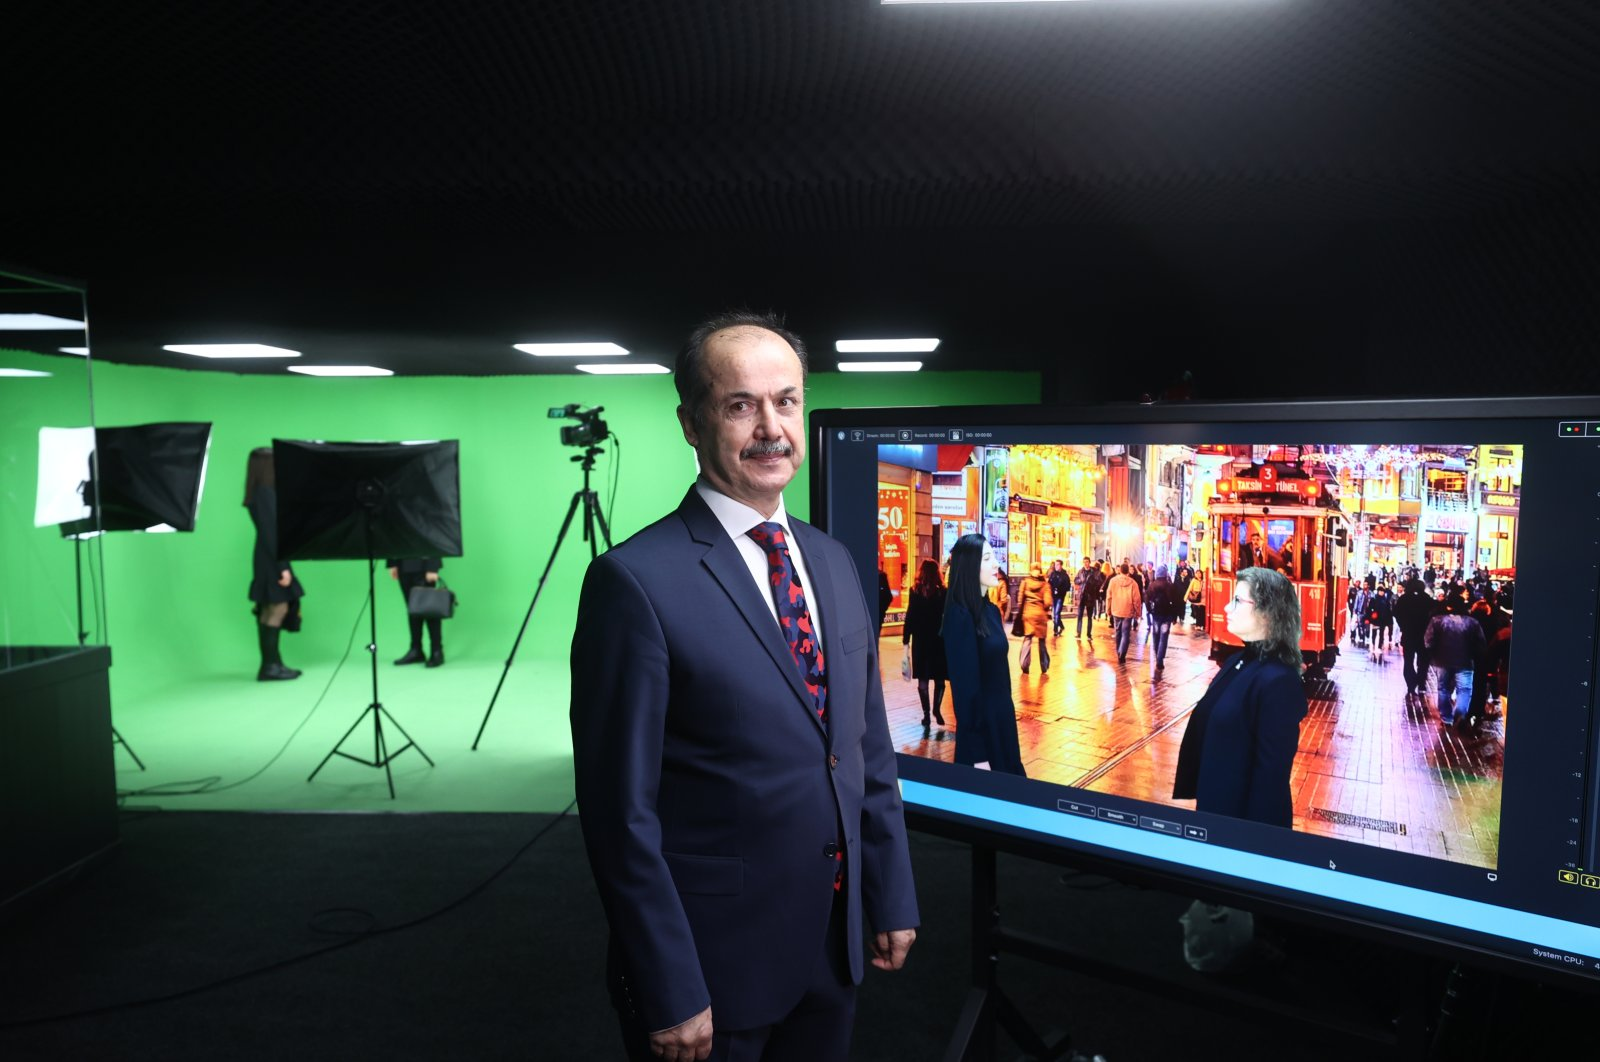 YEE head Şeref Ateş poses in front of a screen showing a Turkish language teaching video in the capital Ankara, Turkey, March 30, 2021. (AA Photo)